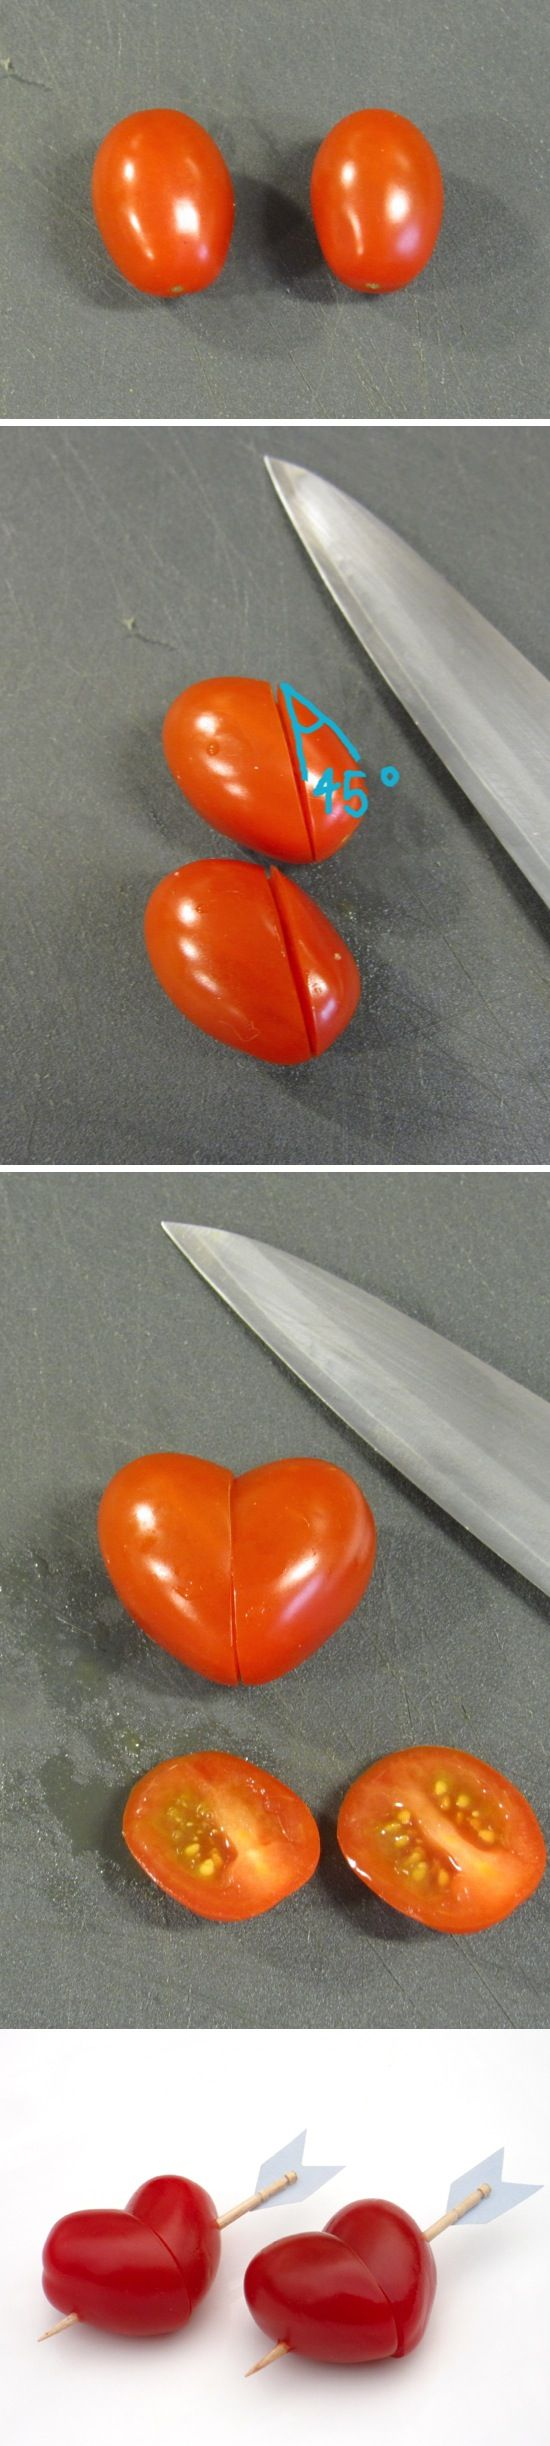 Heart Shaped Cherry/Grape Tomatoes. Use a toothpick to resemble cupid's arrow. Cute addition to a veggie tray!